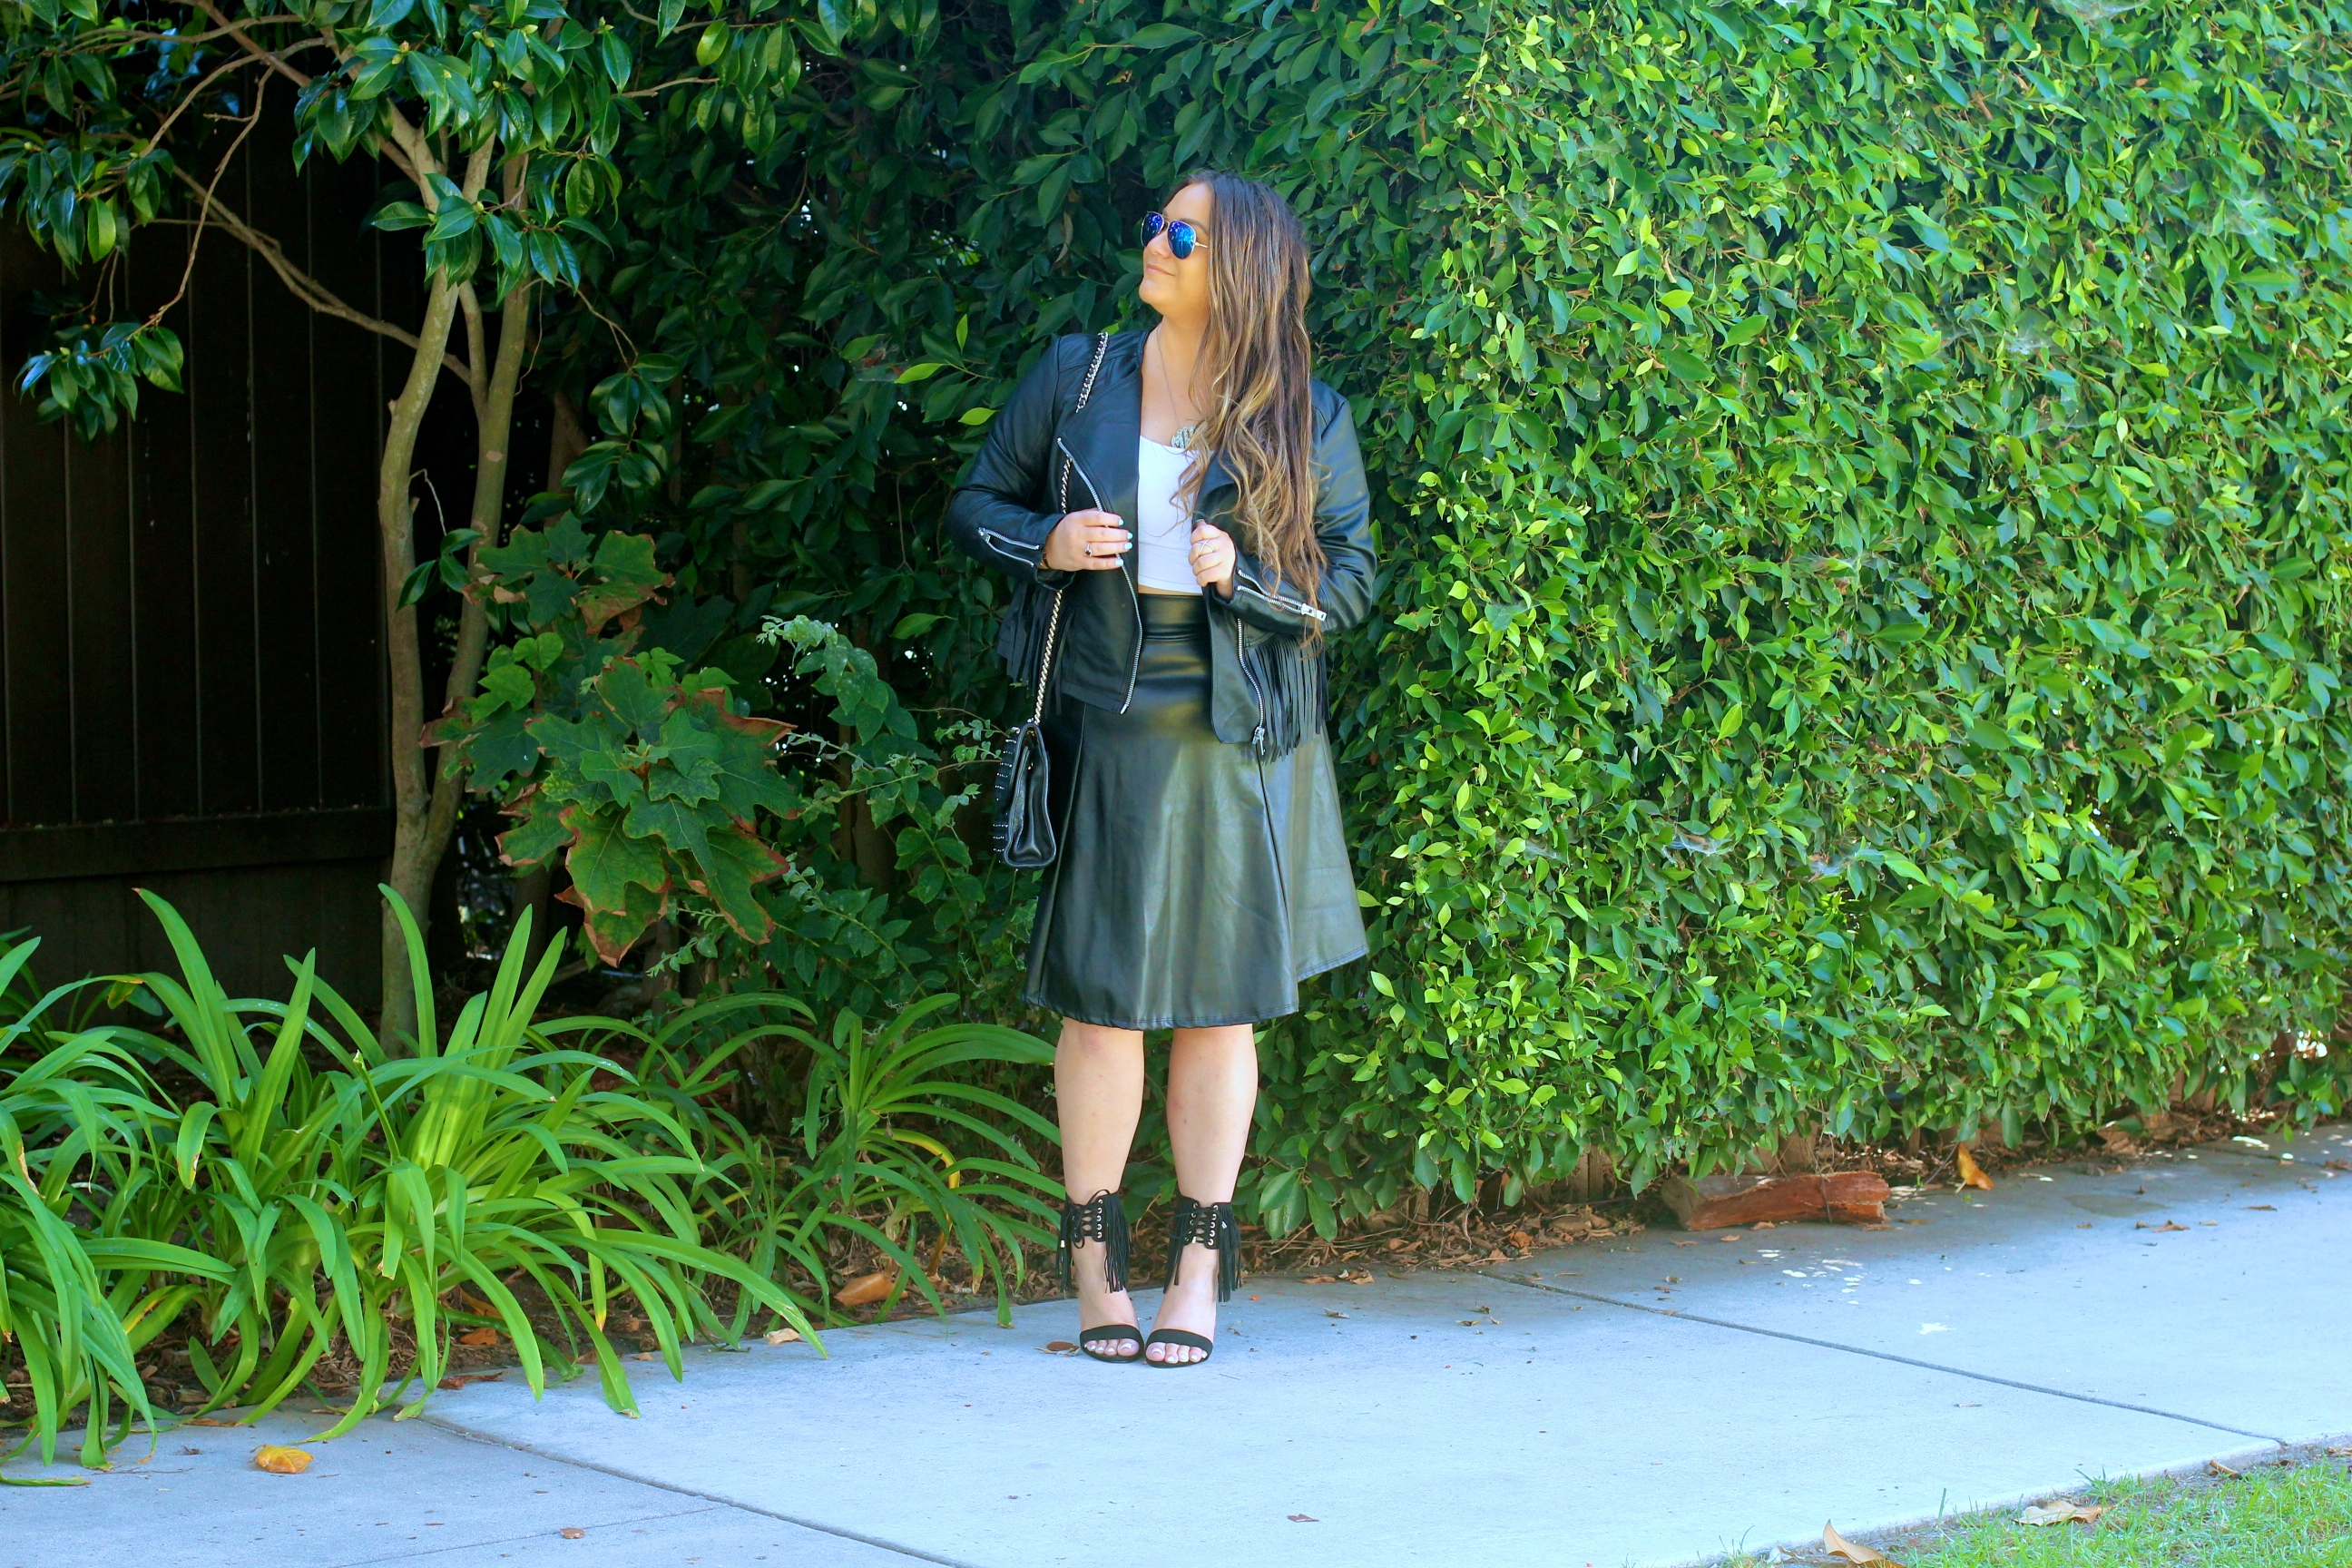 missyonmadison, melissa tierney, fringe leather jacket, coffee shop coats, leather fringe coffee shop coats, ray bans, mirror aviators, black quilted bag, rebecca minkoff affair bag, black rebecca minkoff affair bag, black fringe heeled sandals, black fringe heels, fringe heels, white crop top, black leather midi skirt, black midi skirt, faux leather skirt, holiday style, outfit inspo, ootd, holiday outfit inspo, thanksgiving outfit, fringe trend, how to wear fringe, style blogger,